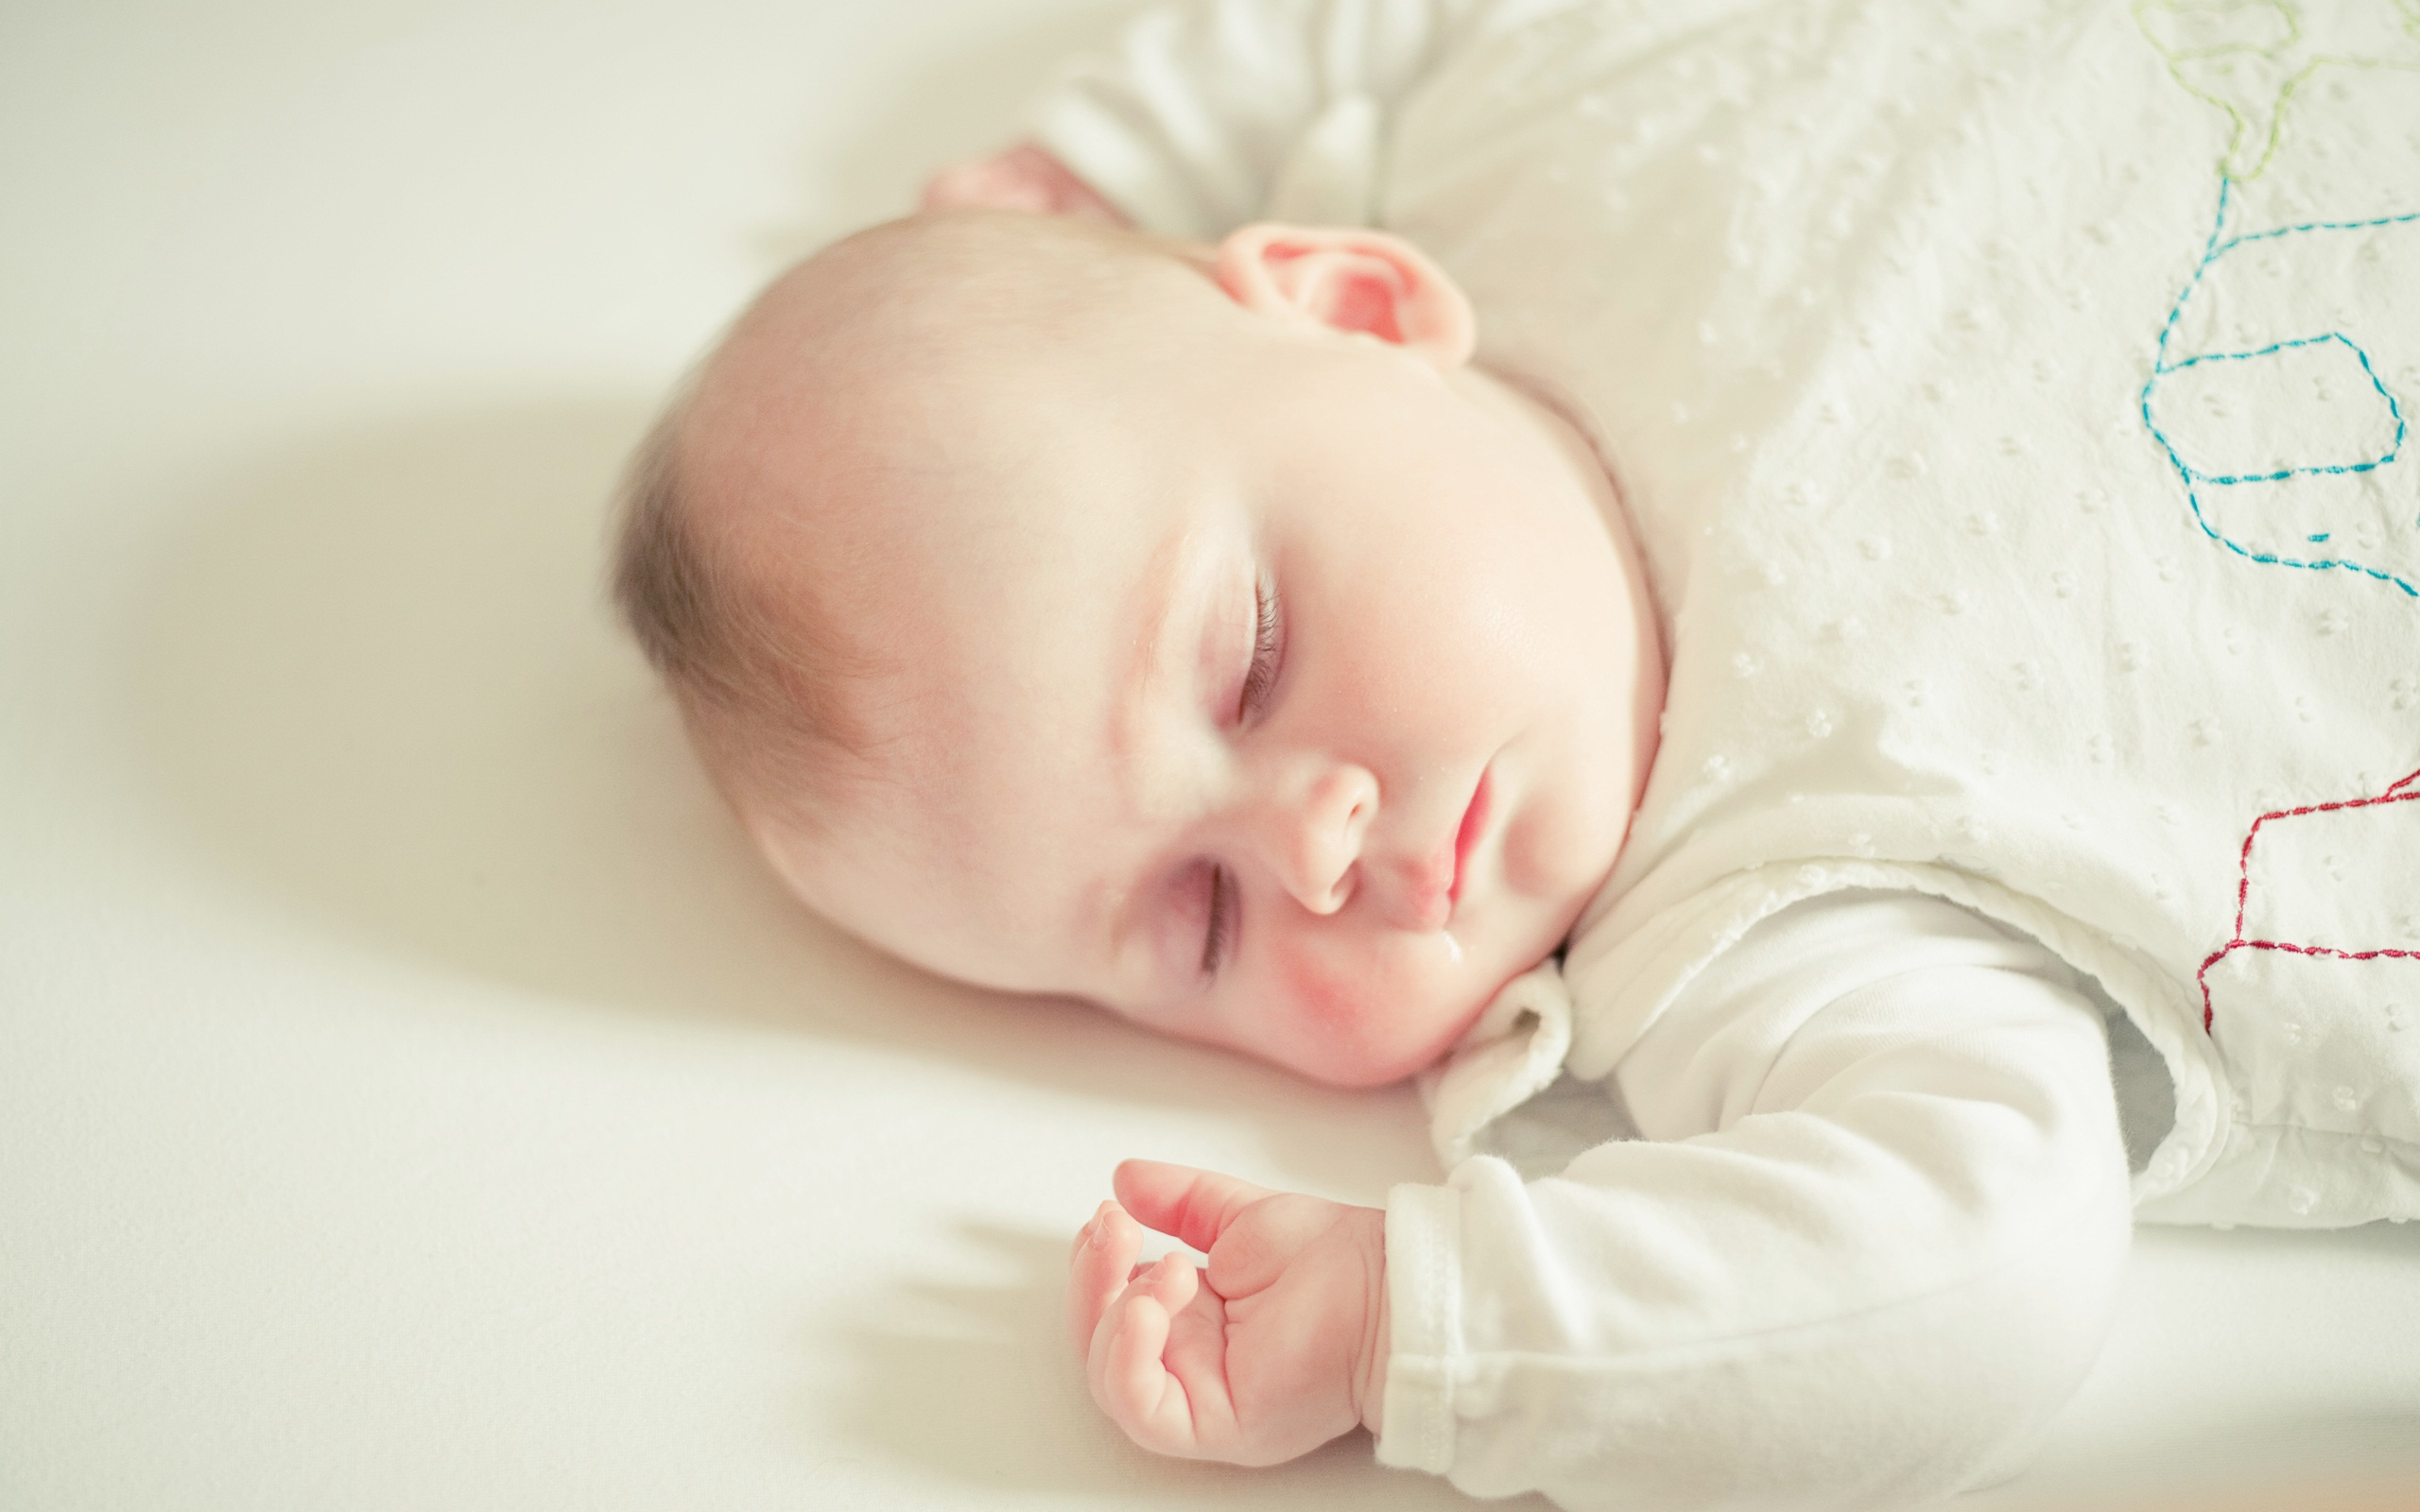 Cute Sleeping Baby HD Wallpaper | Thesecurewalls.com Wallpaper